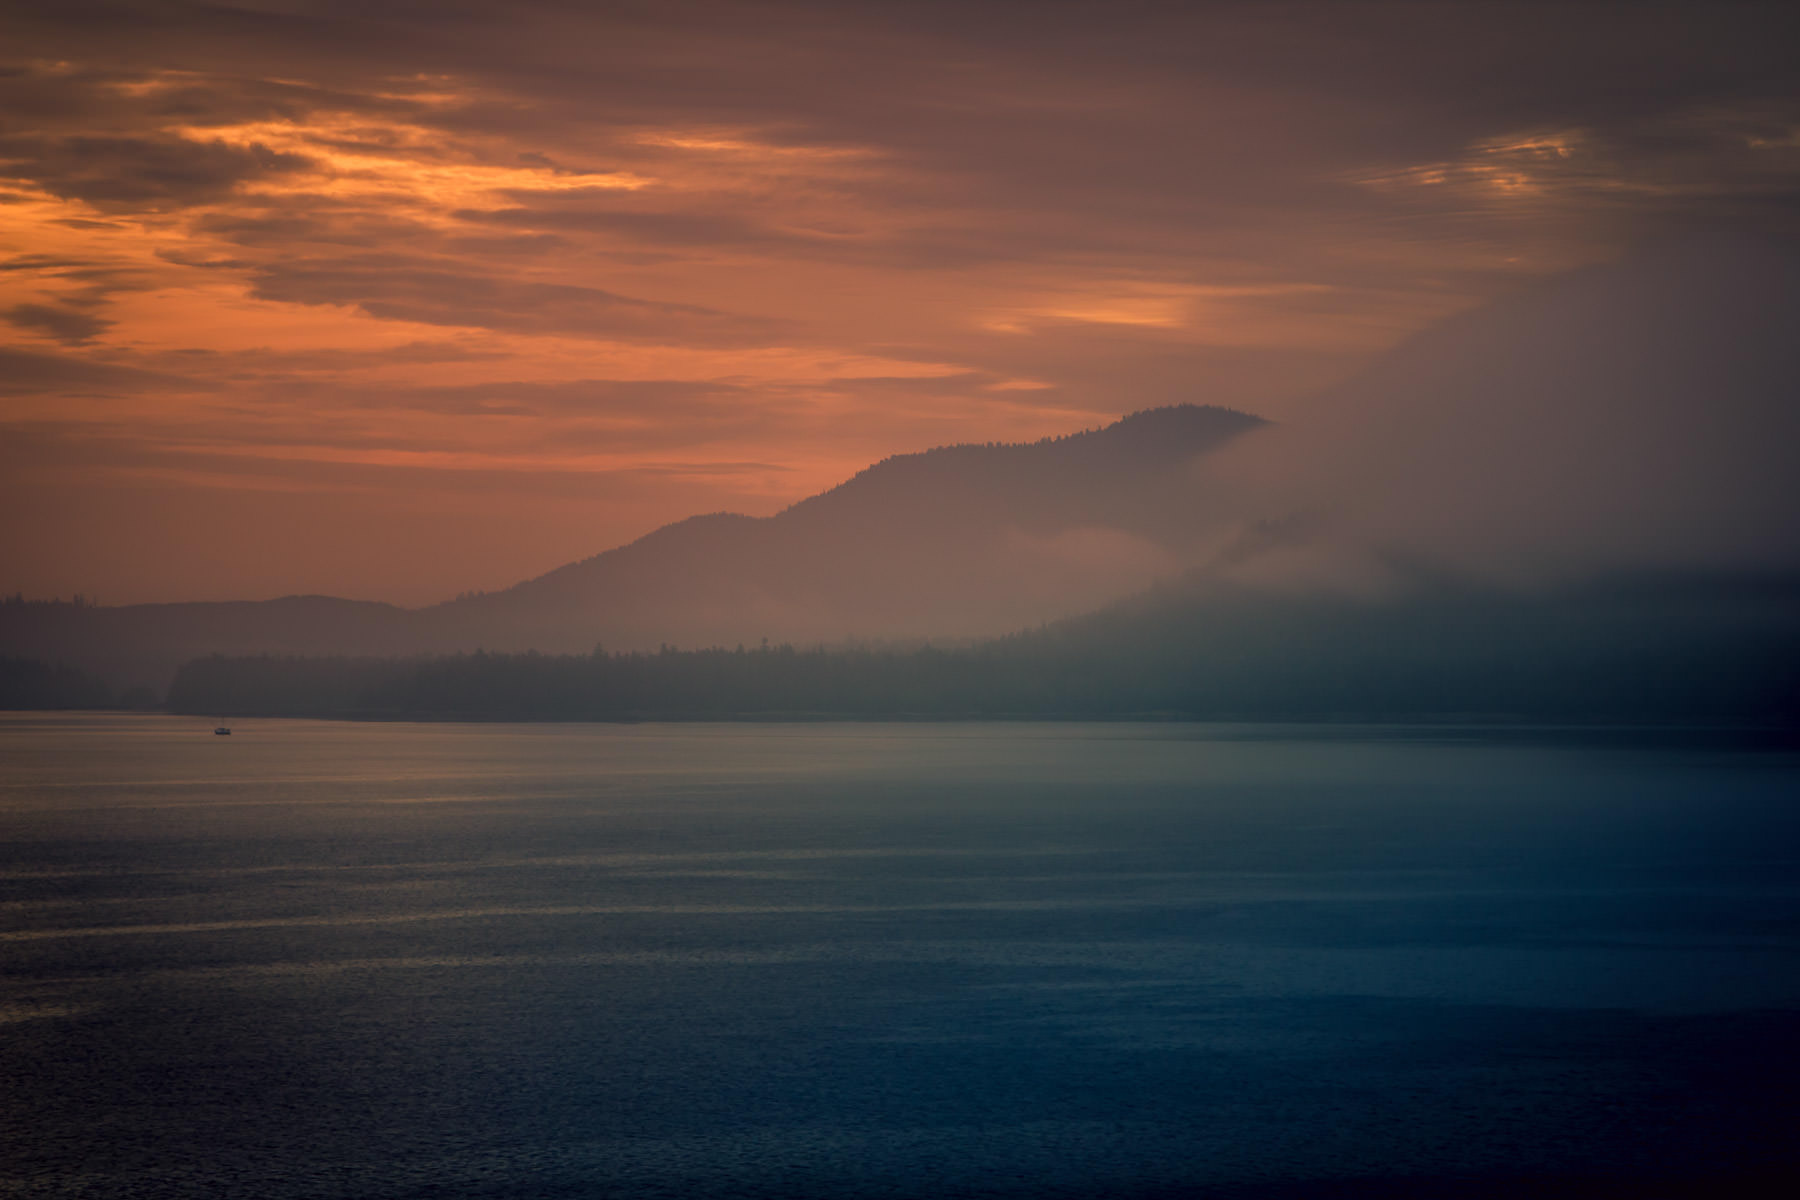 A boat sails Frederick Sound, Alaska, as the sun rises over the surrounding mountains.